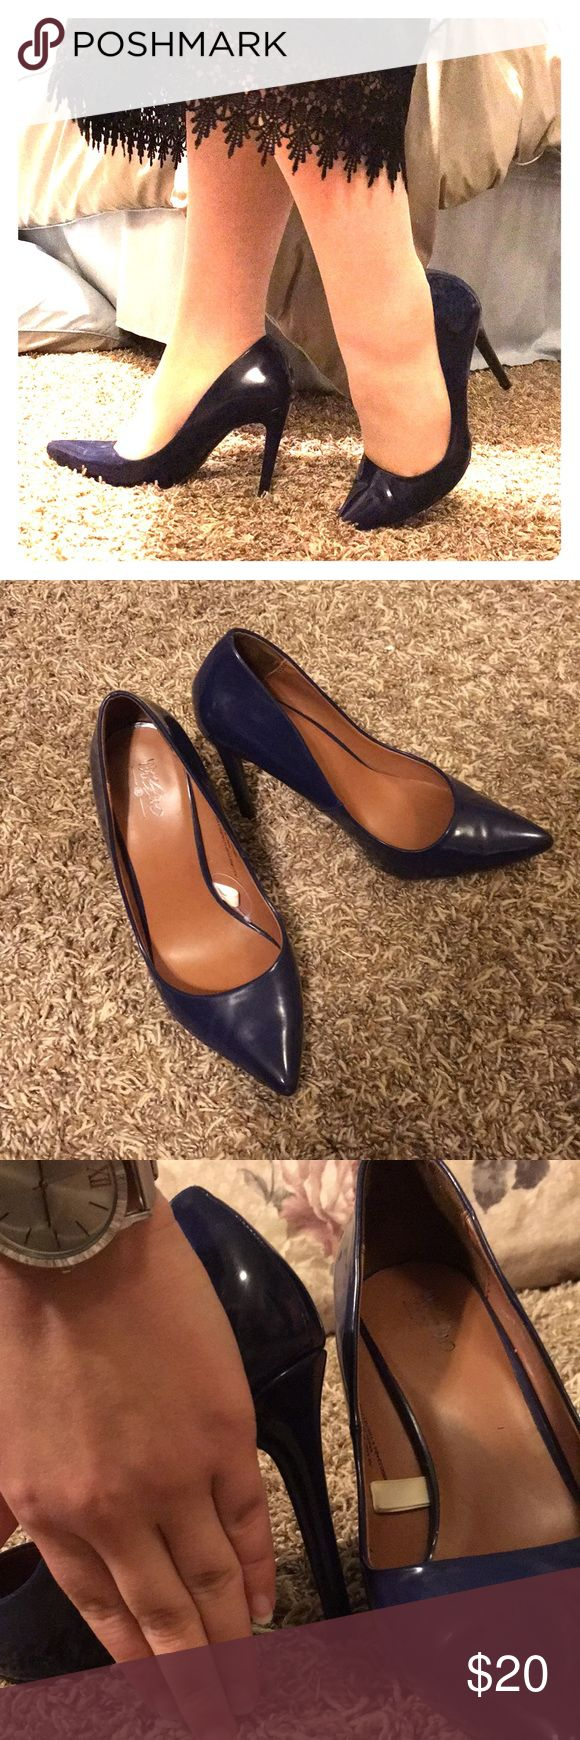 ‼️SALE‼️Classy navy heels 😘 Nice pointed toe navy heels! One of the toes have a little scuff. But it's not noticeable at all😊 Shoes Heels